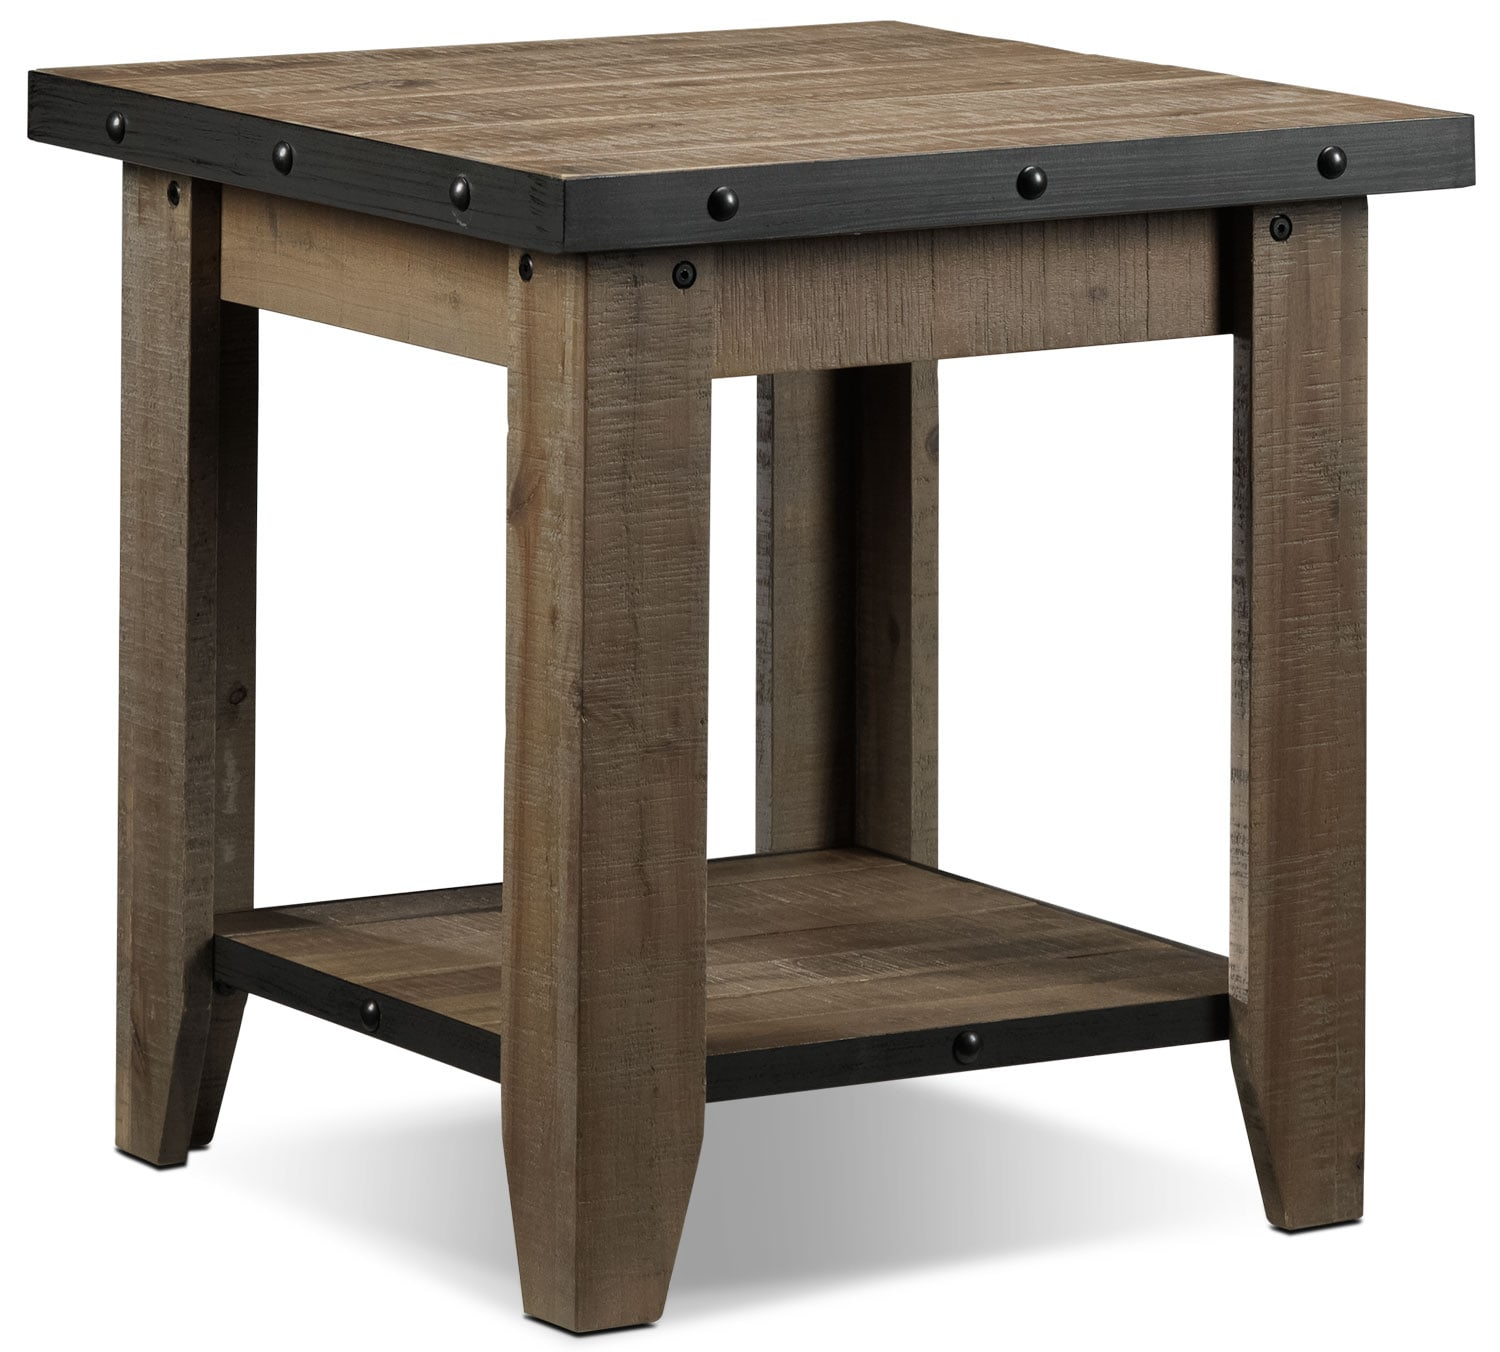 Walton End Table - Natural